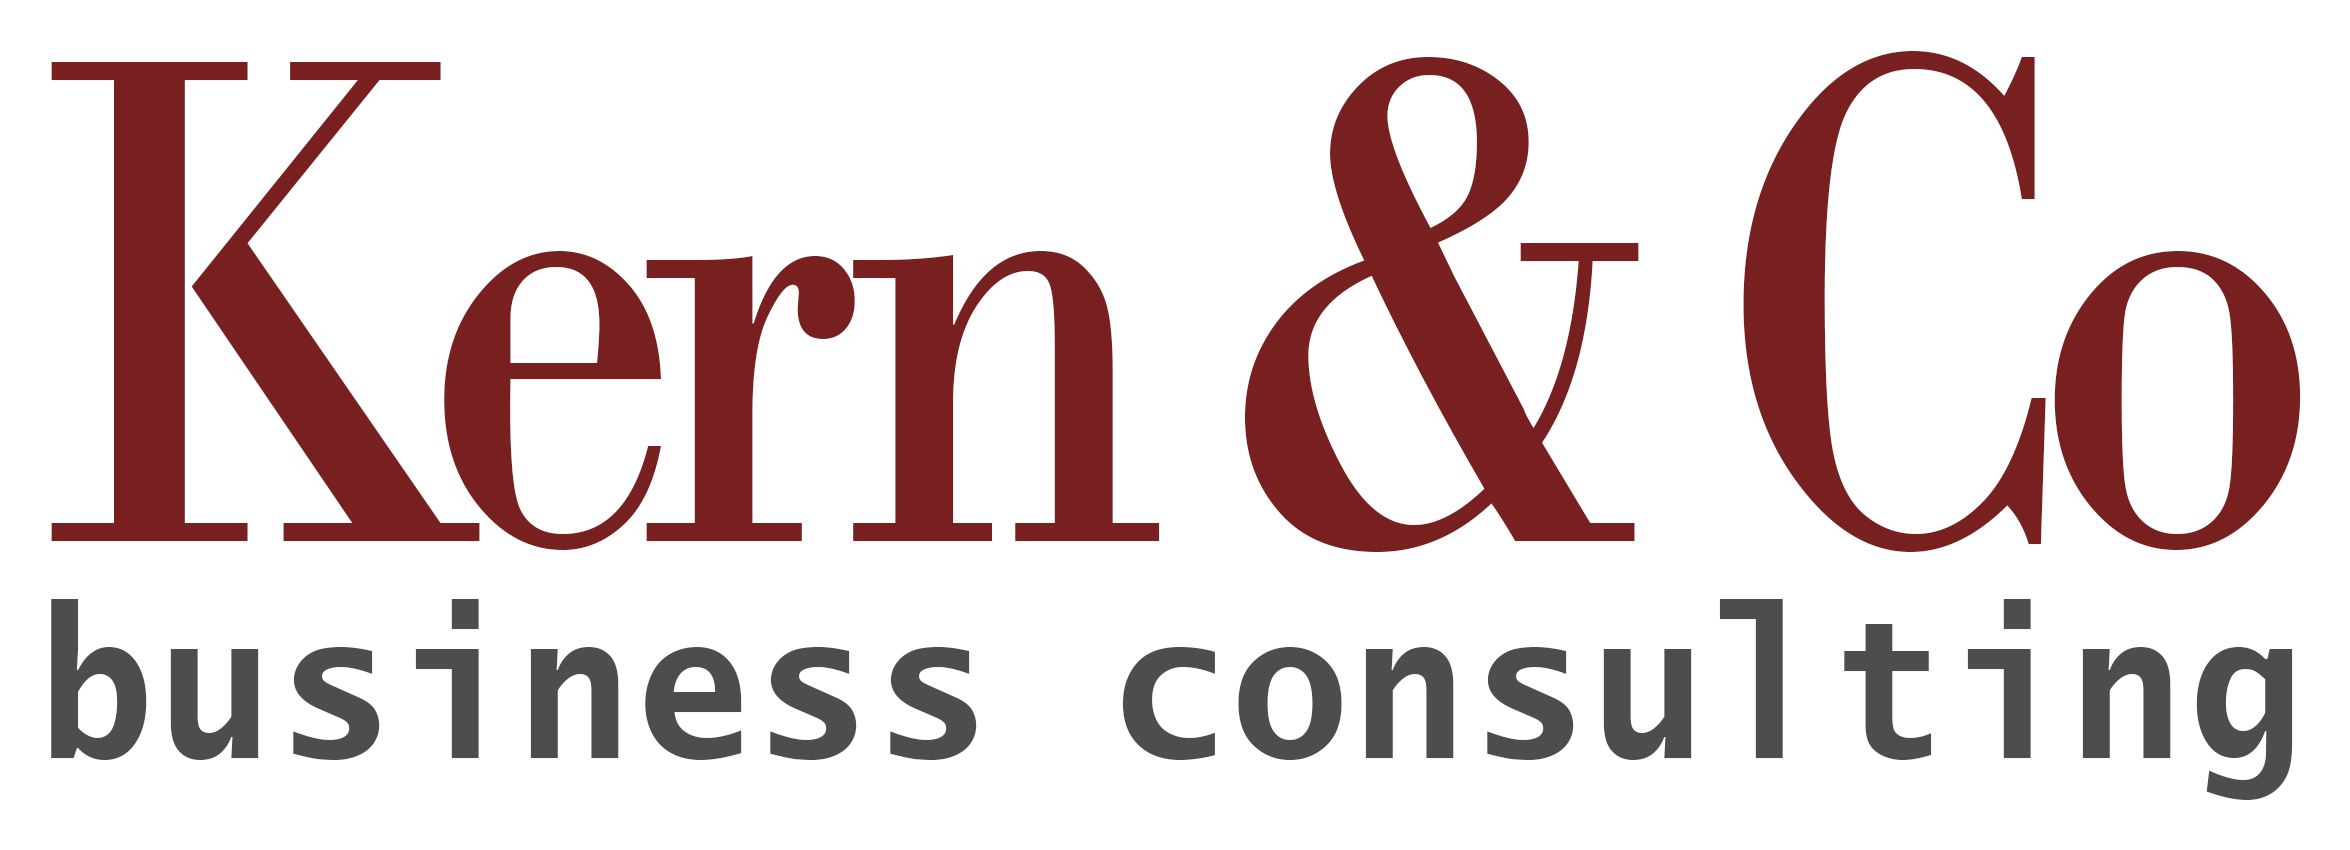 Kern&Co business consulting KG